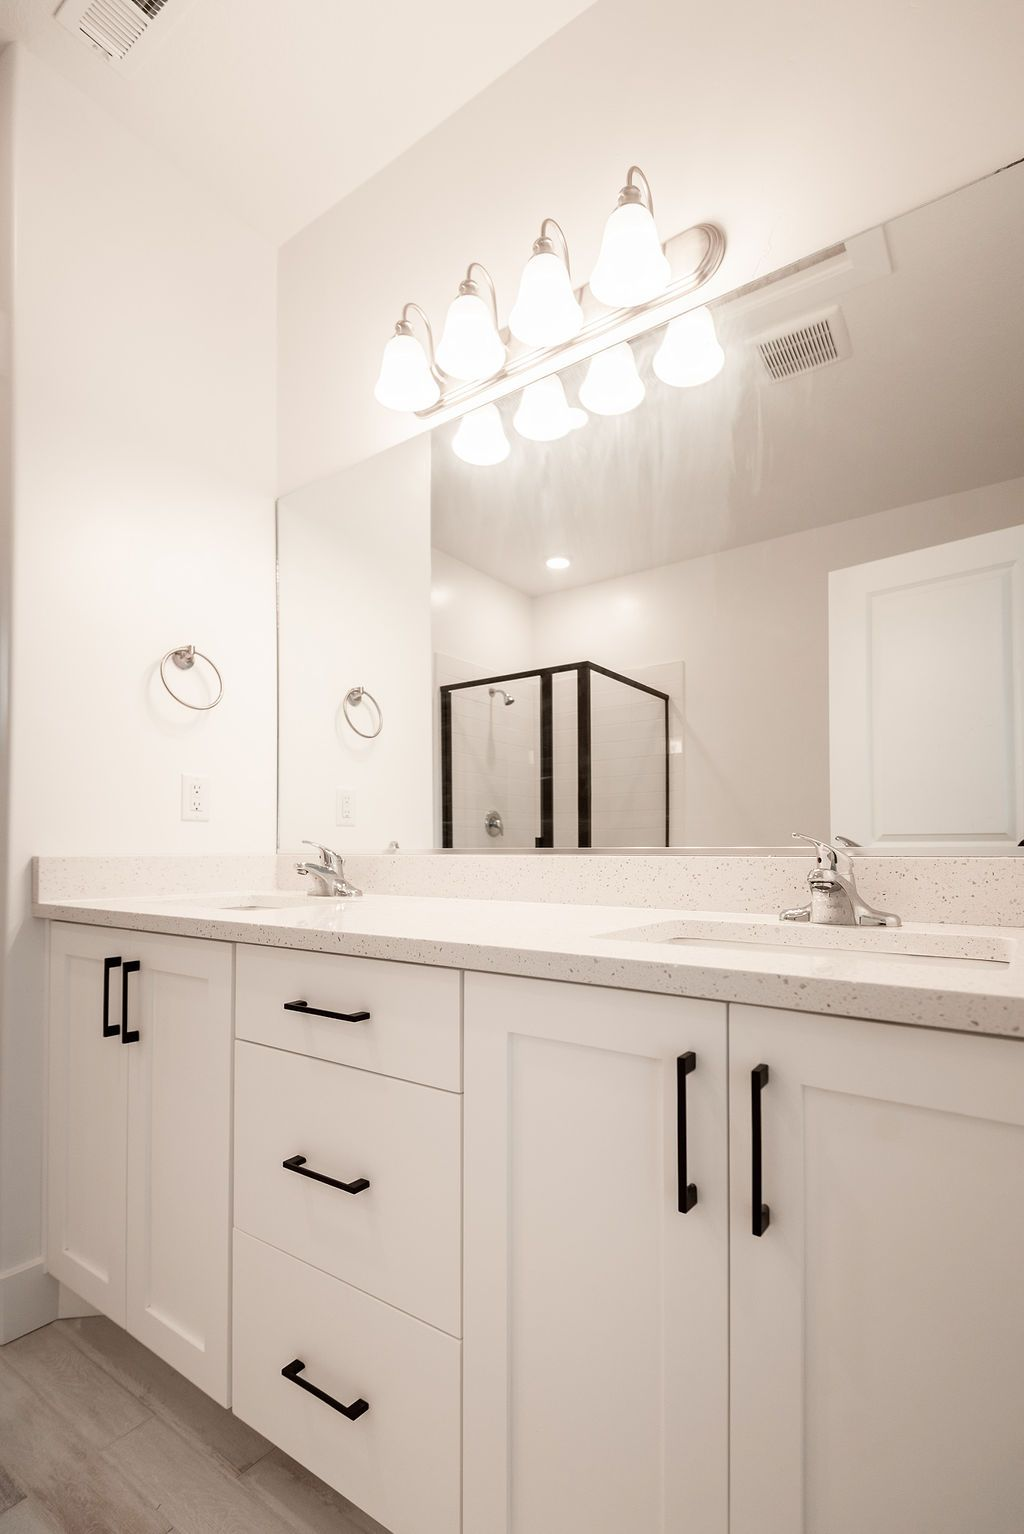 Bathroom featured in the Sumac (Basement) By Visionary Homes in Logan, UT